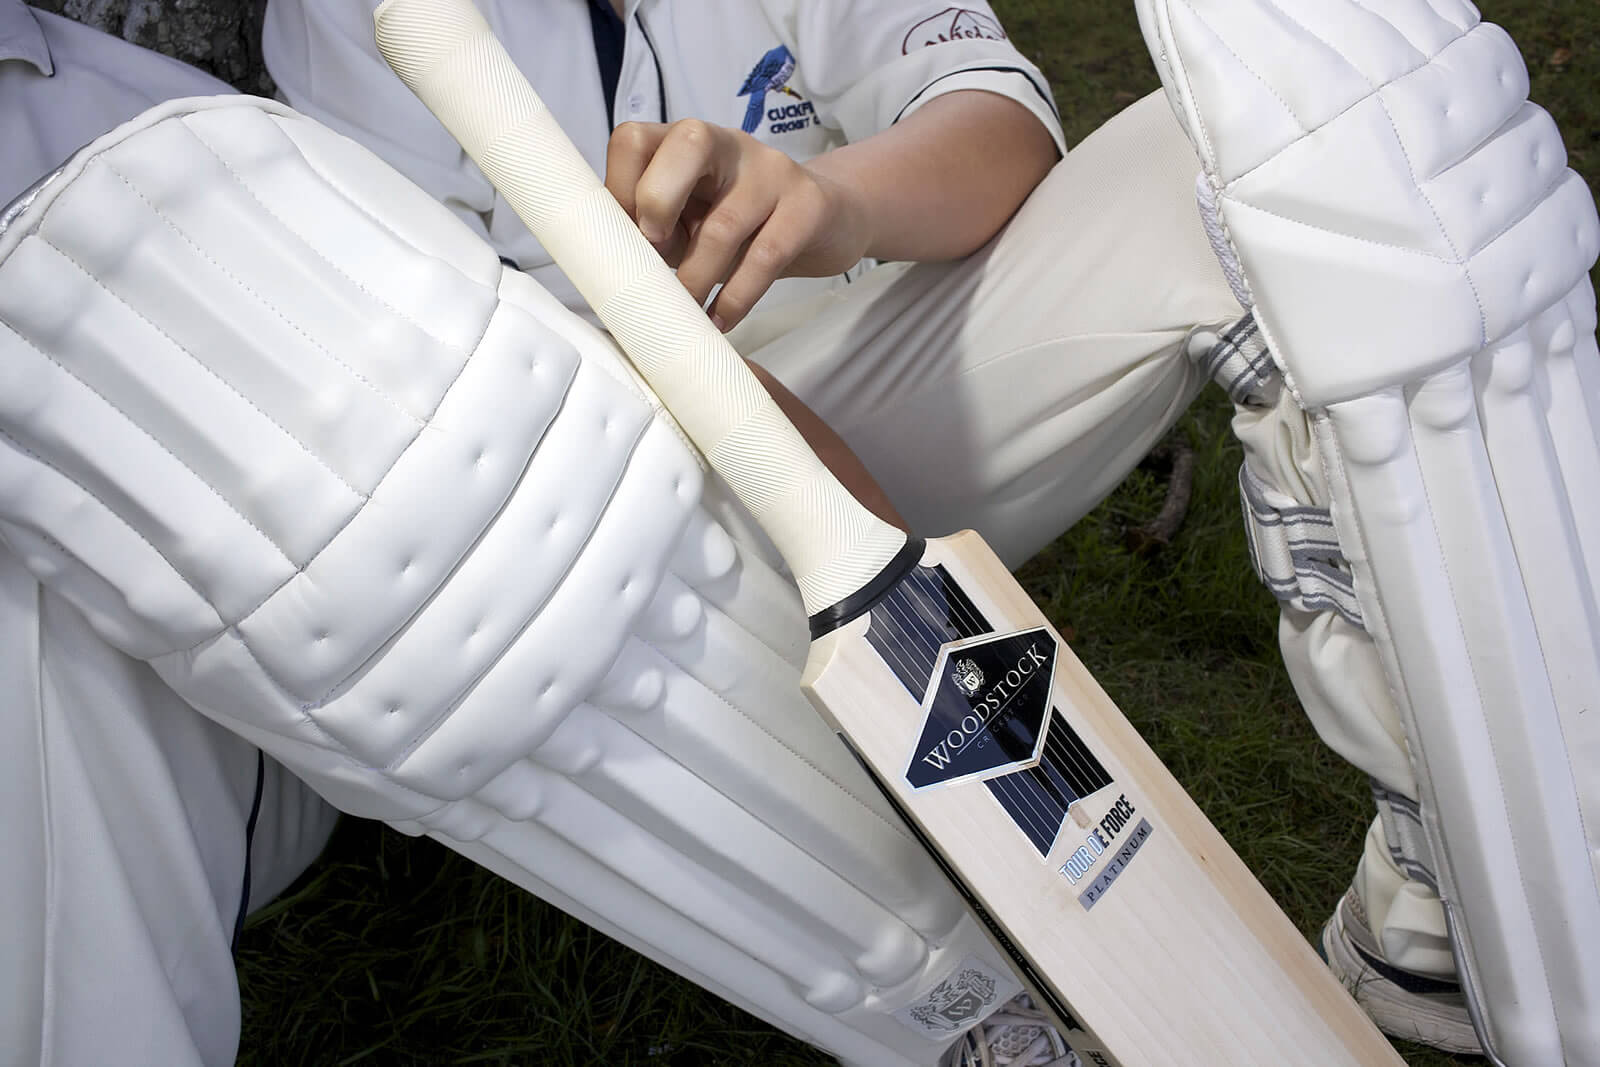 Woodstock cricket  pads and protection